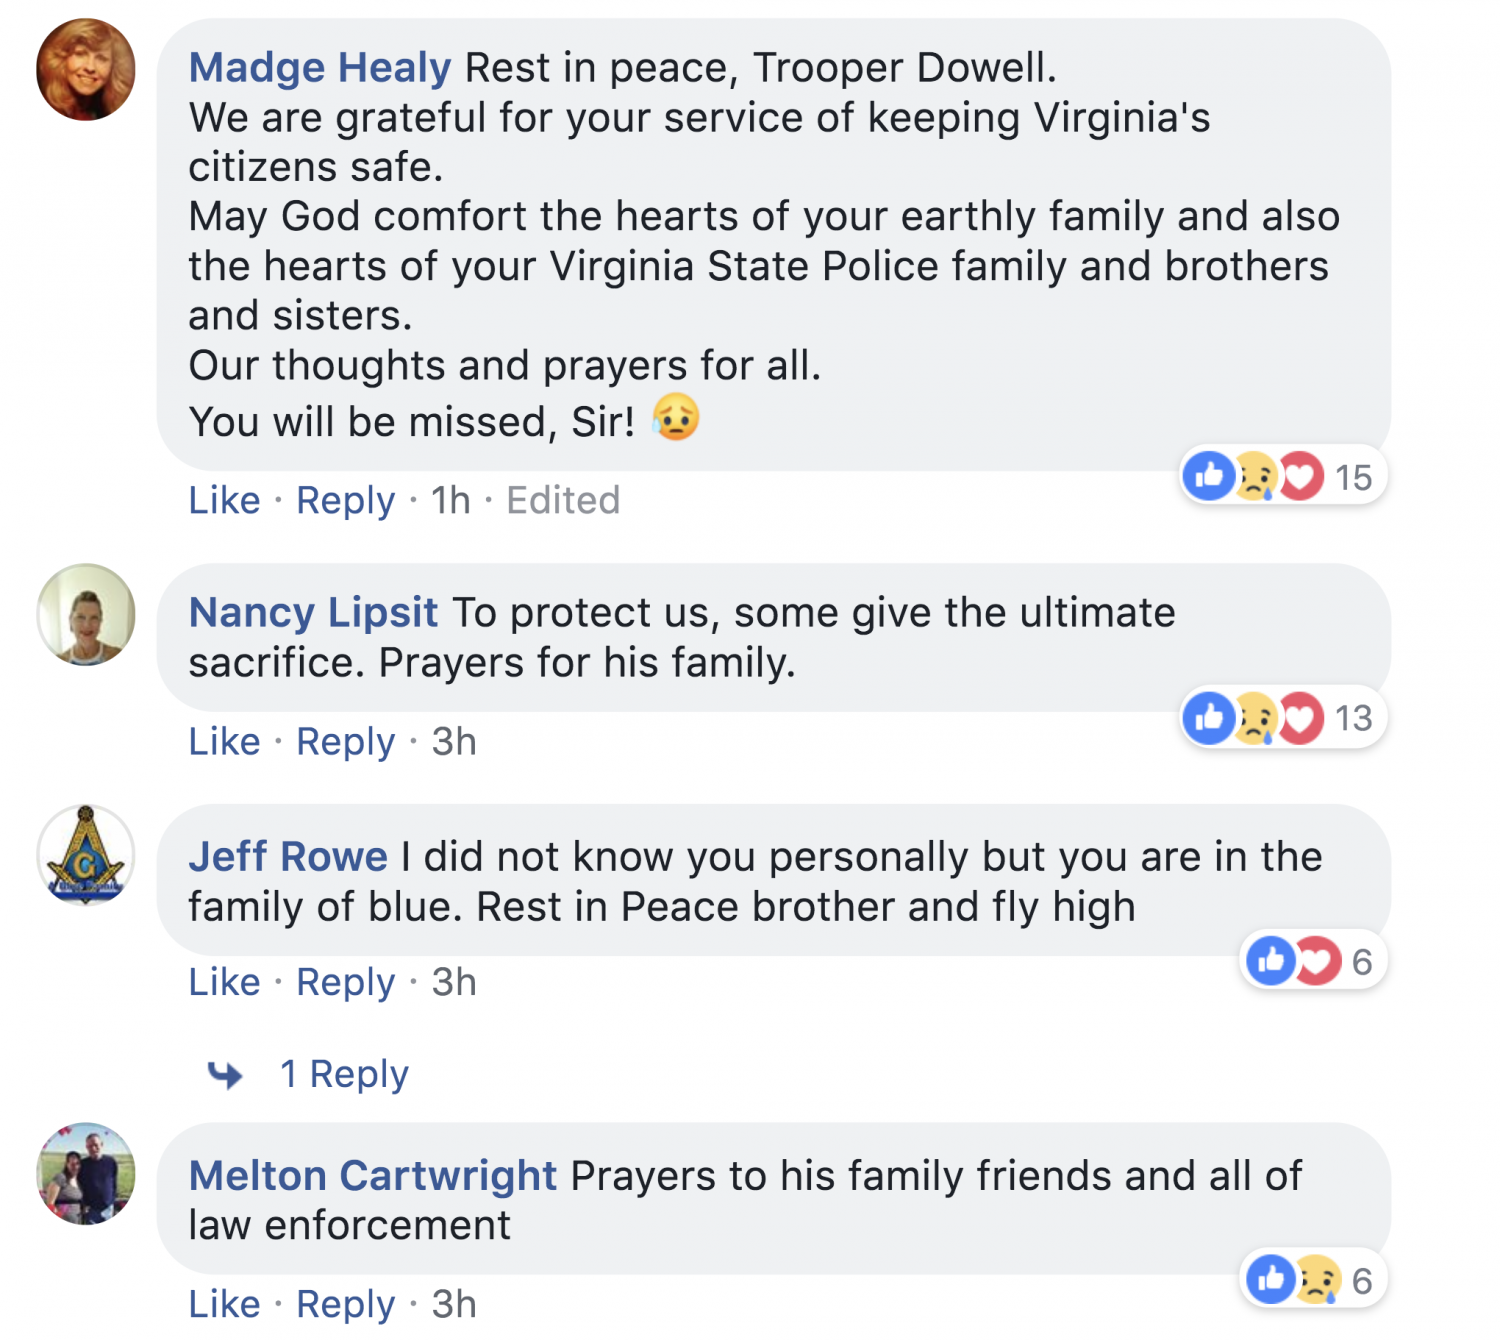 Virginia State Police Comment Section